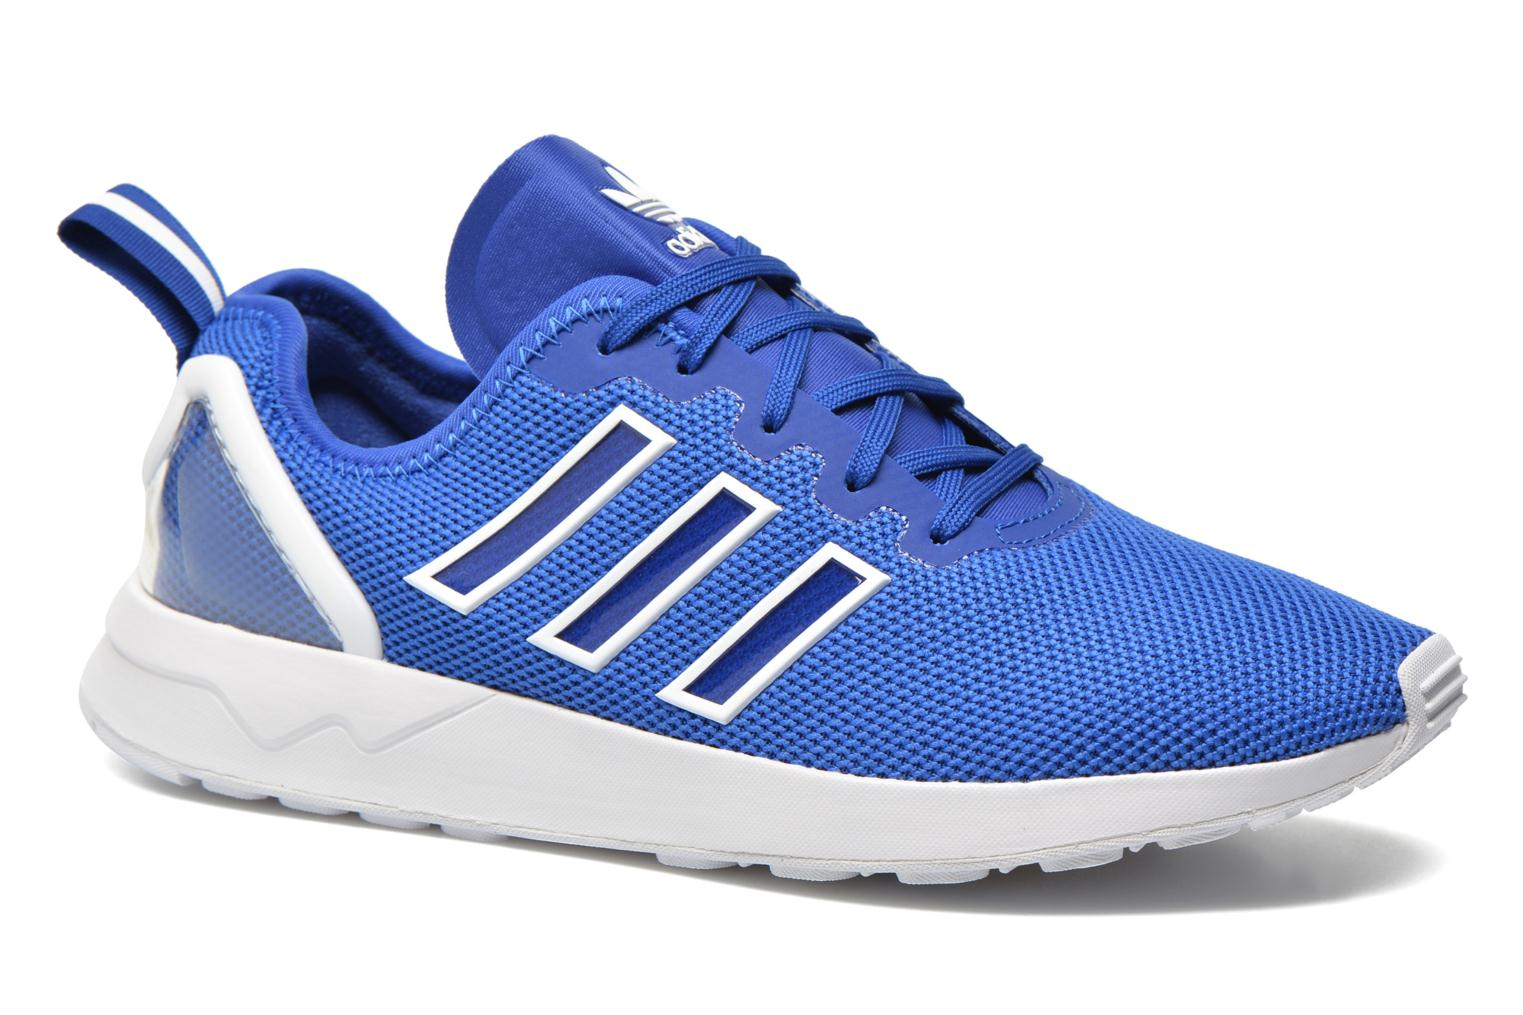 8fbdc27a5 Sneakers Zx Flux Adv by Adidas Originals